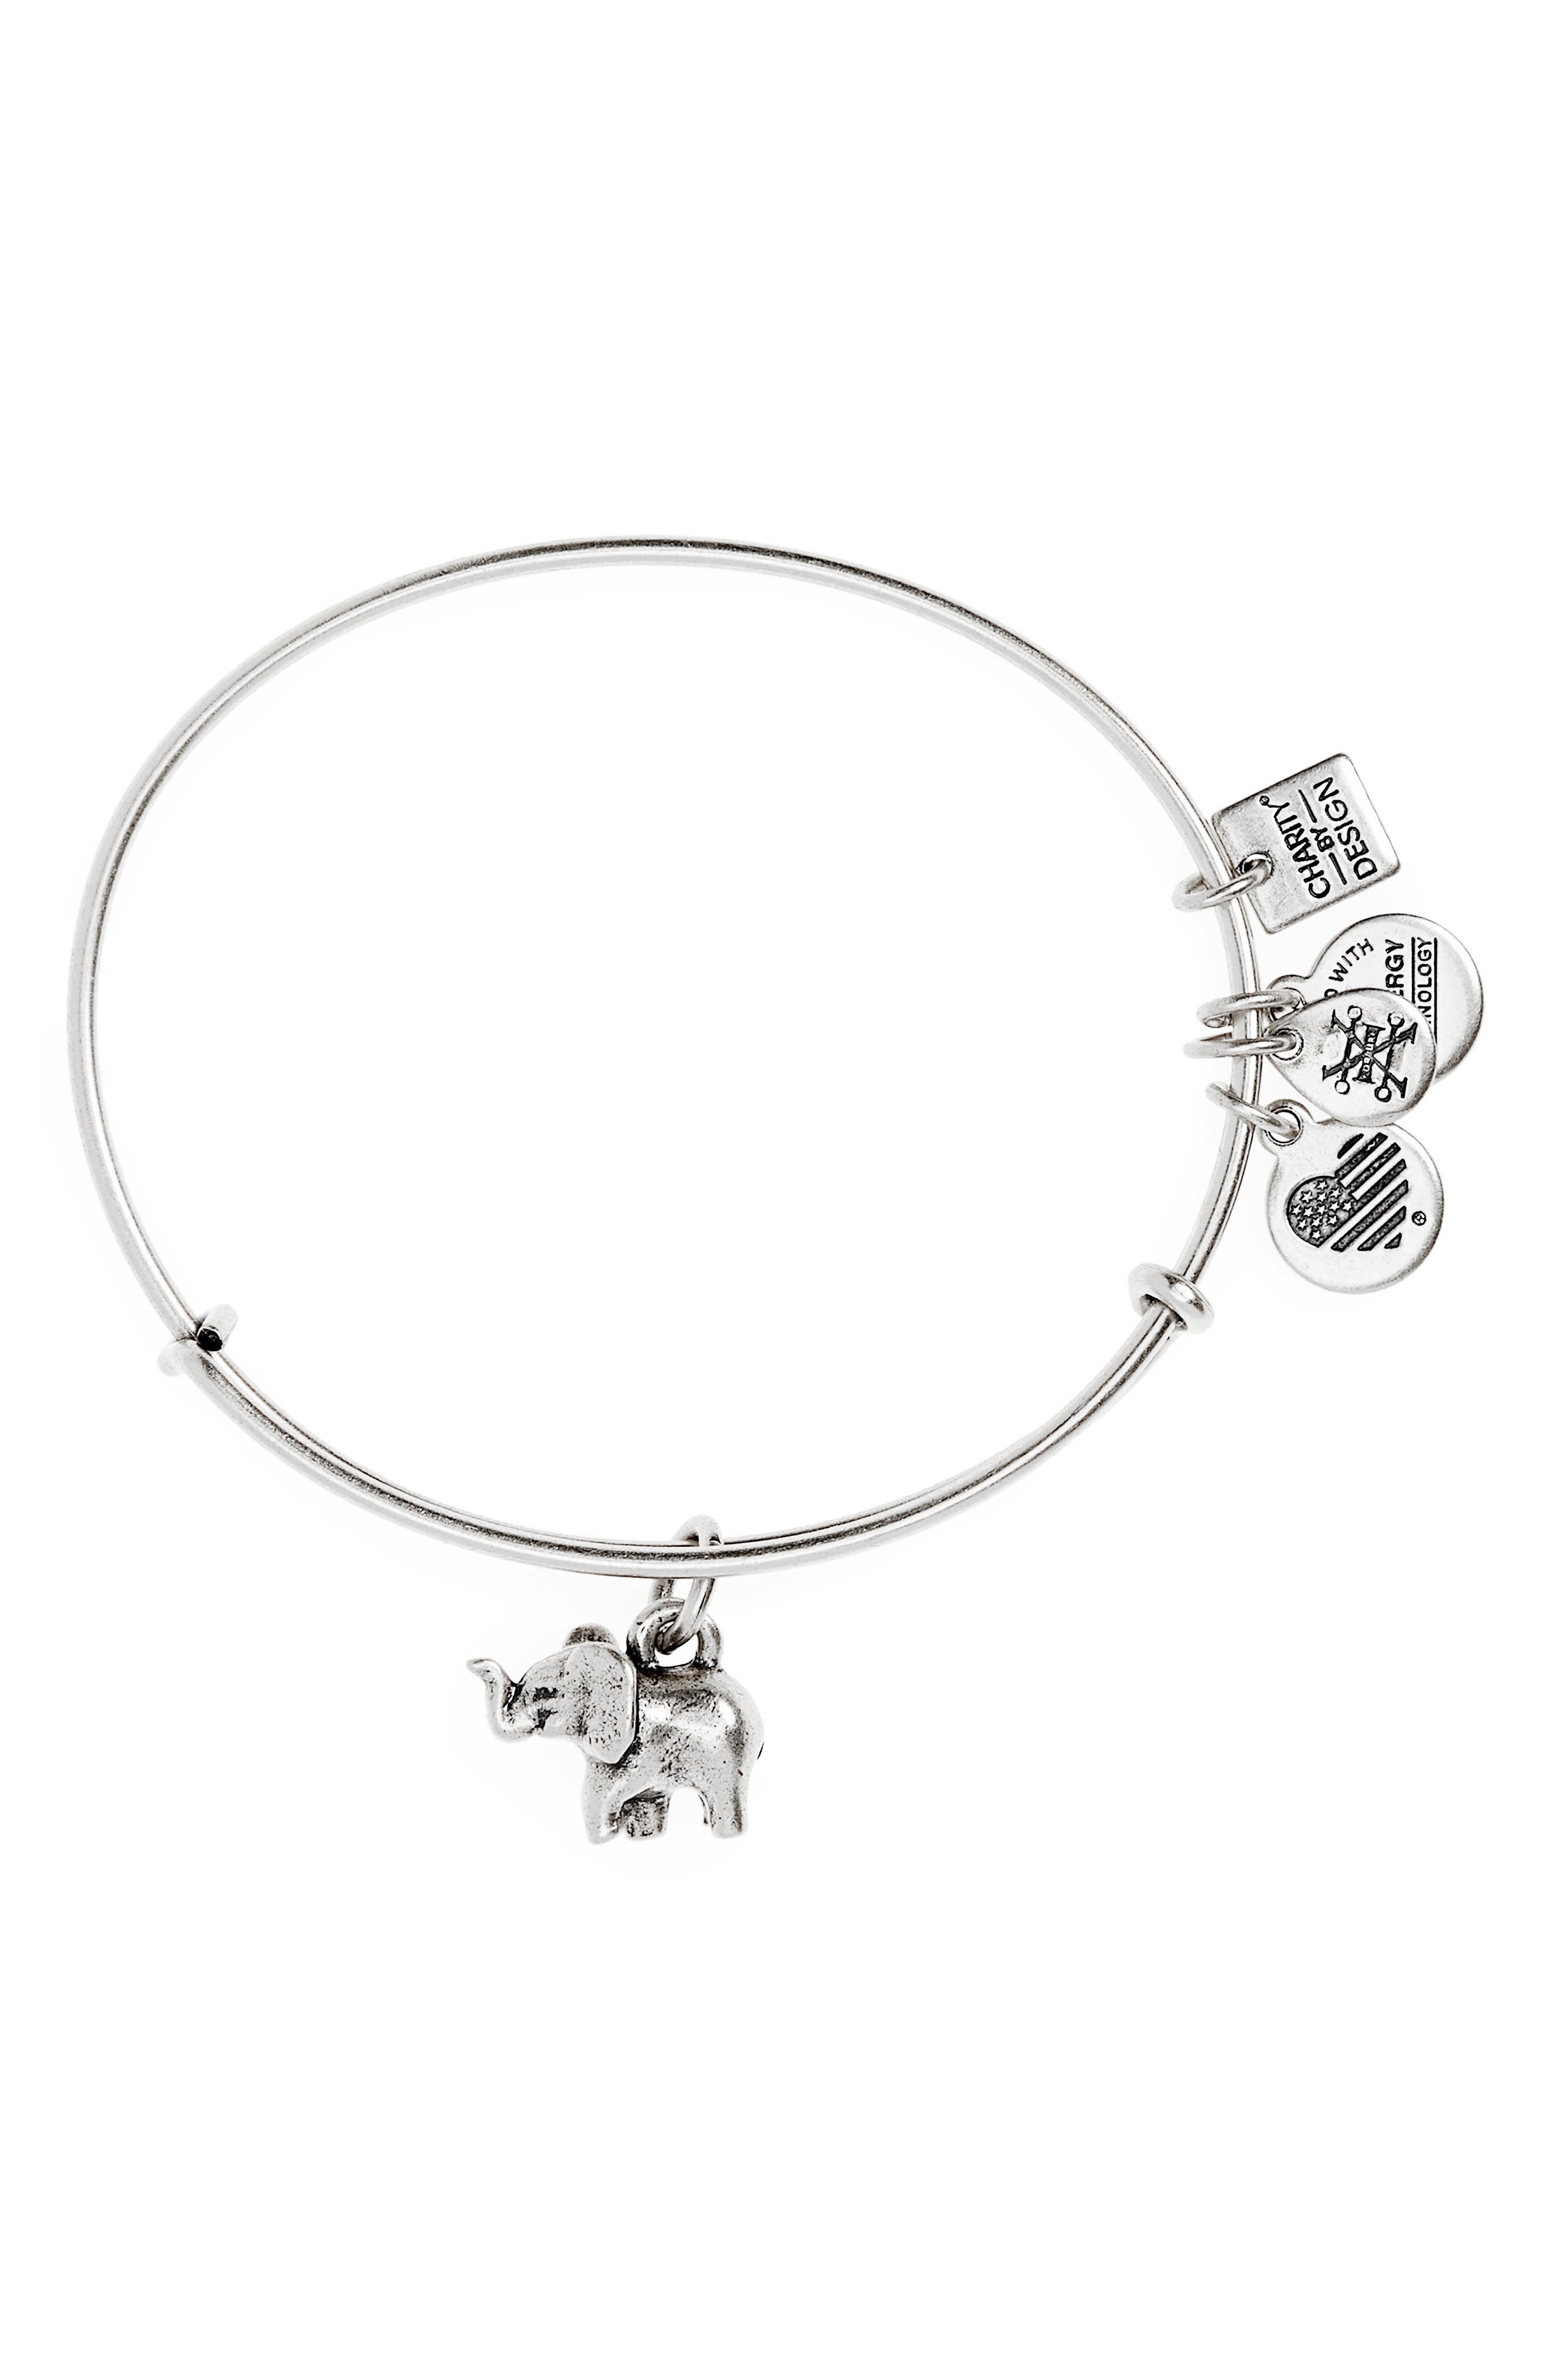 Charity by Design Elephant II Adjustable Bangle,                         Main,                         color, SILVER